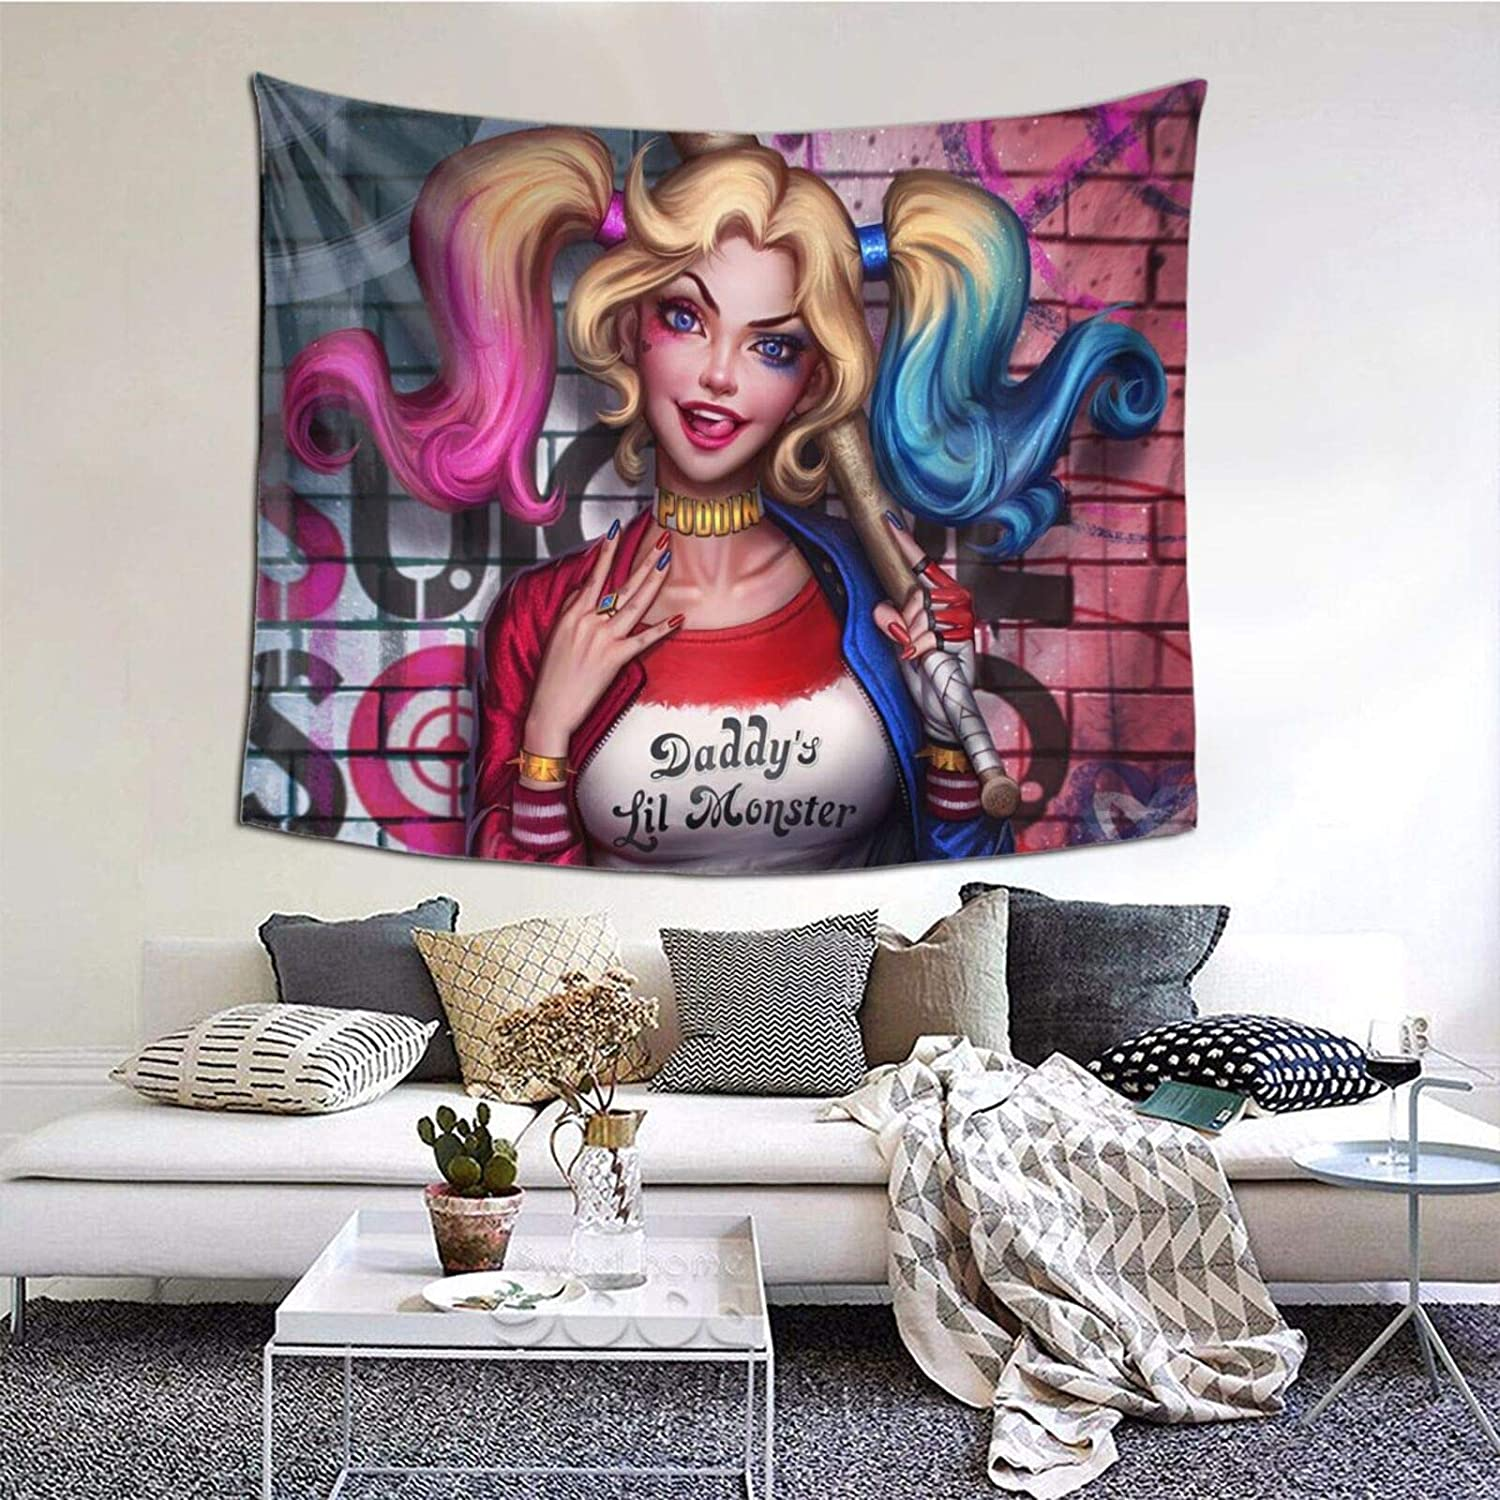 MAJJAKJH Decorative Tapestry Harley Quinn Art Wall Hanging Bedroom Living Room Dormitory TV Background Wall Blanket 60 X 51 inches